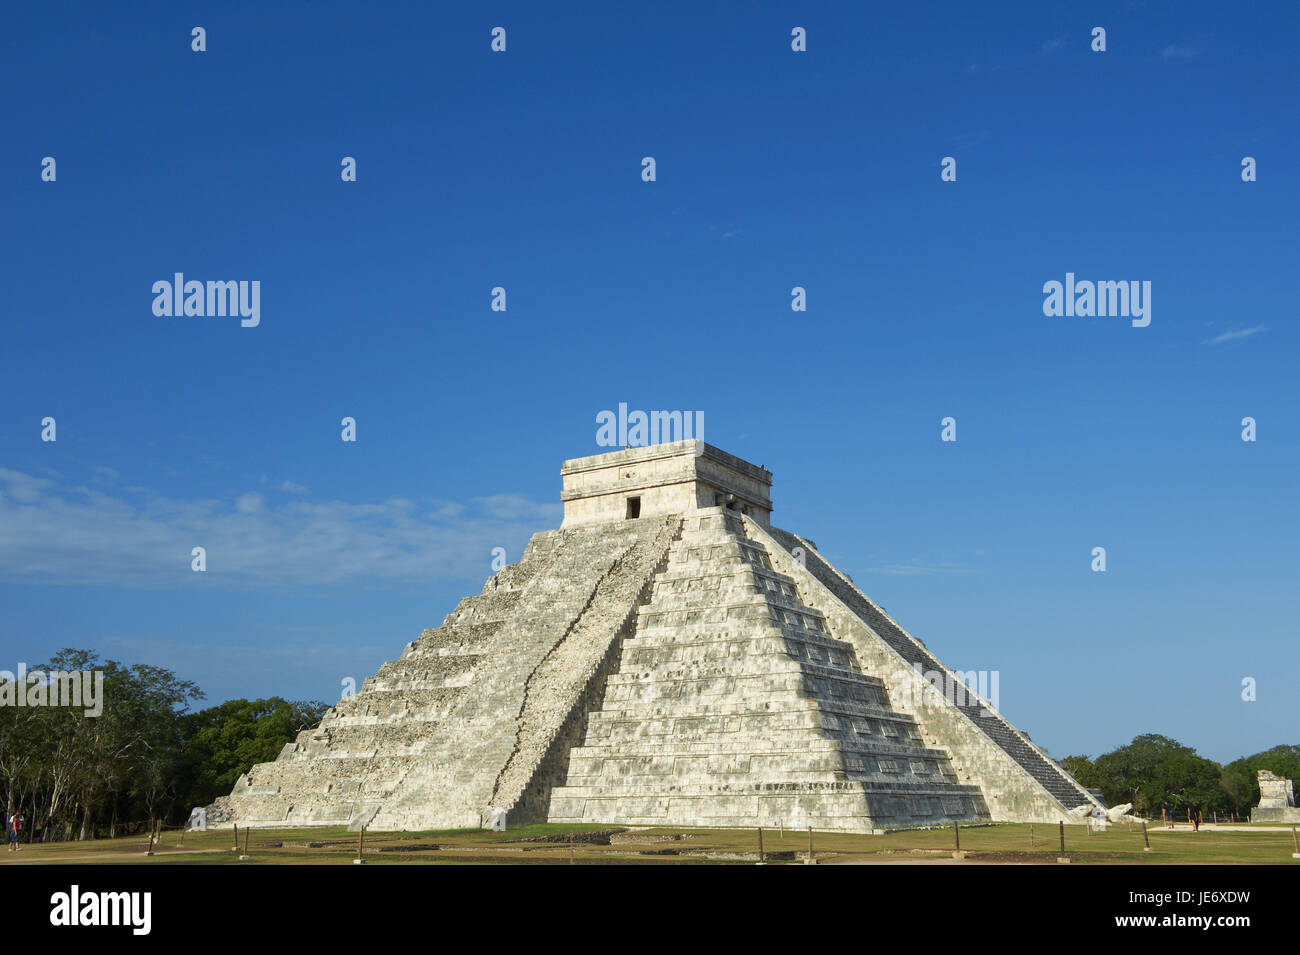 Mexico, Yucatan, Chichen Itza ruin town, UNESCO world heritage, historical Maya ruins, pyramid of the Kukulcan or - Stock Image